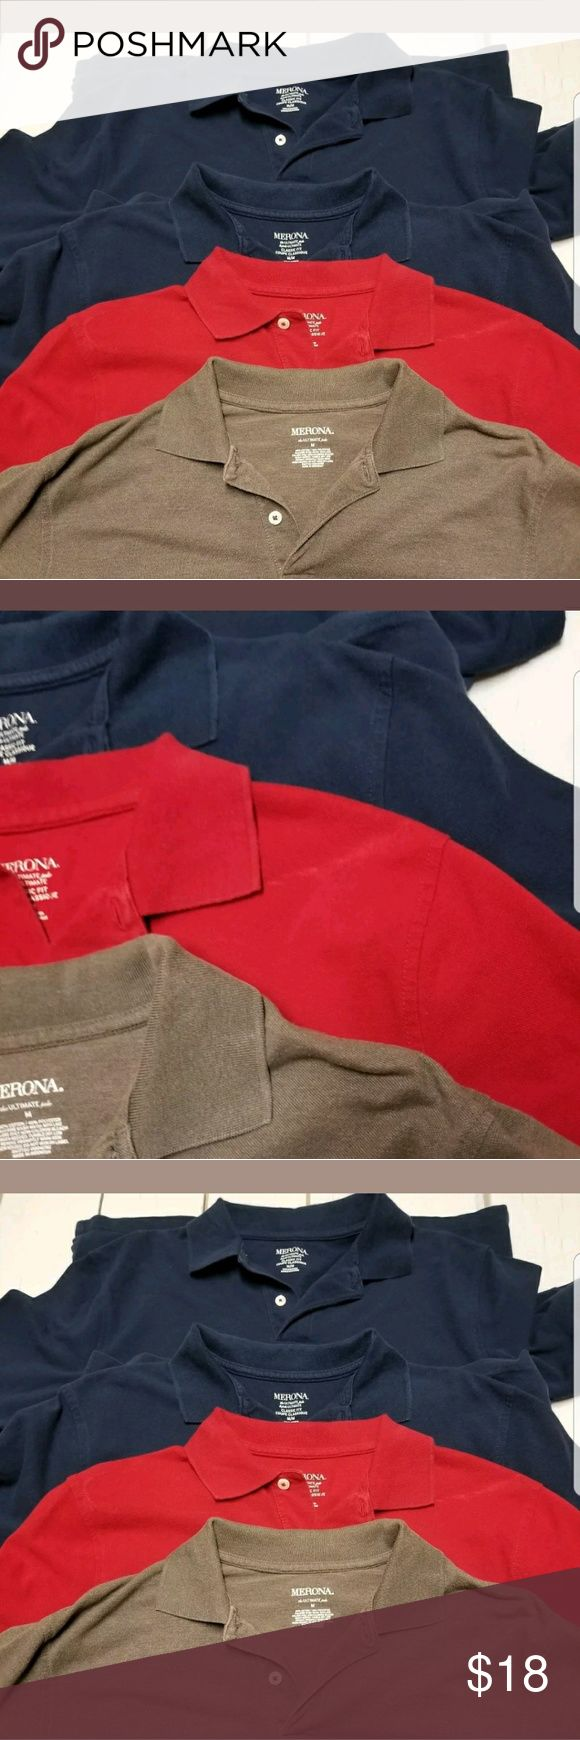 Merona Men's Polo Shirts Size Medium Lot of 4 4 Merona Men's Polo Shirts Size Medium. The red polo shirt has light fading. Please see the pictures. Merona Shirts Polos